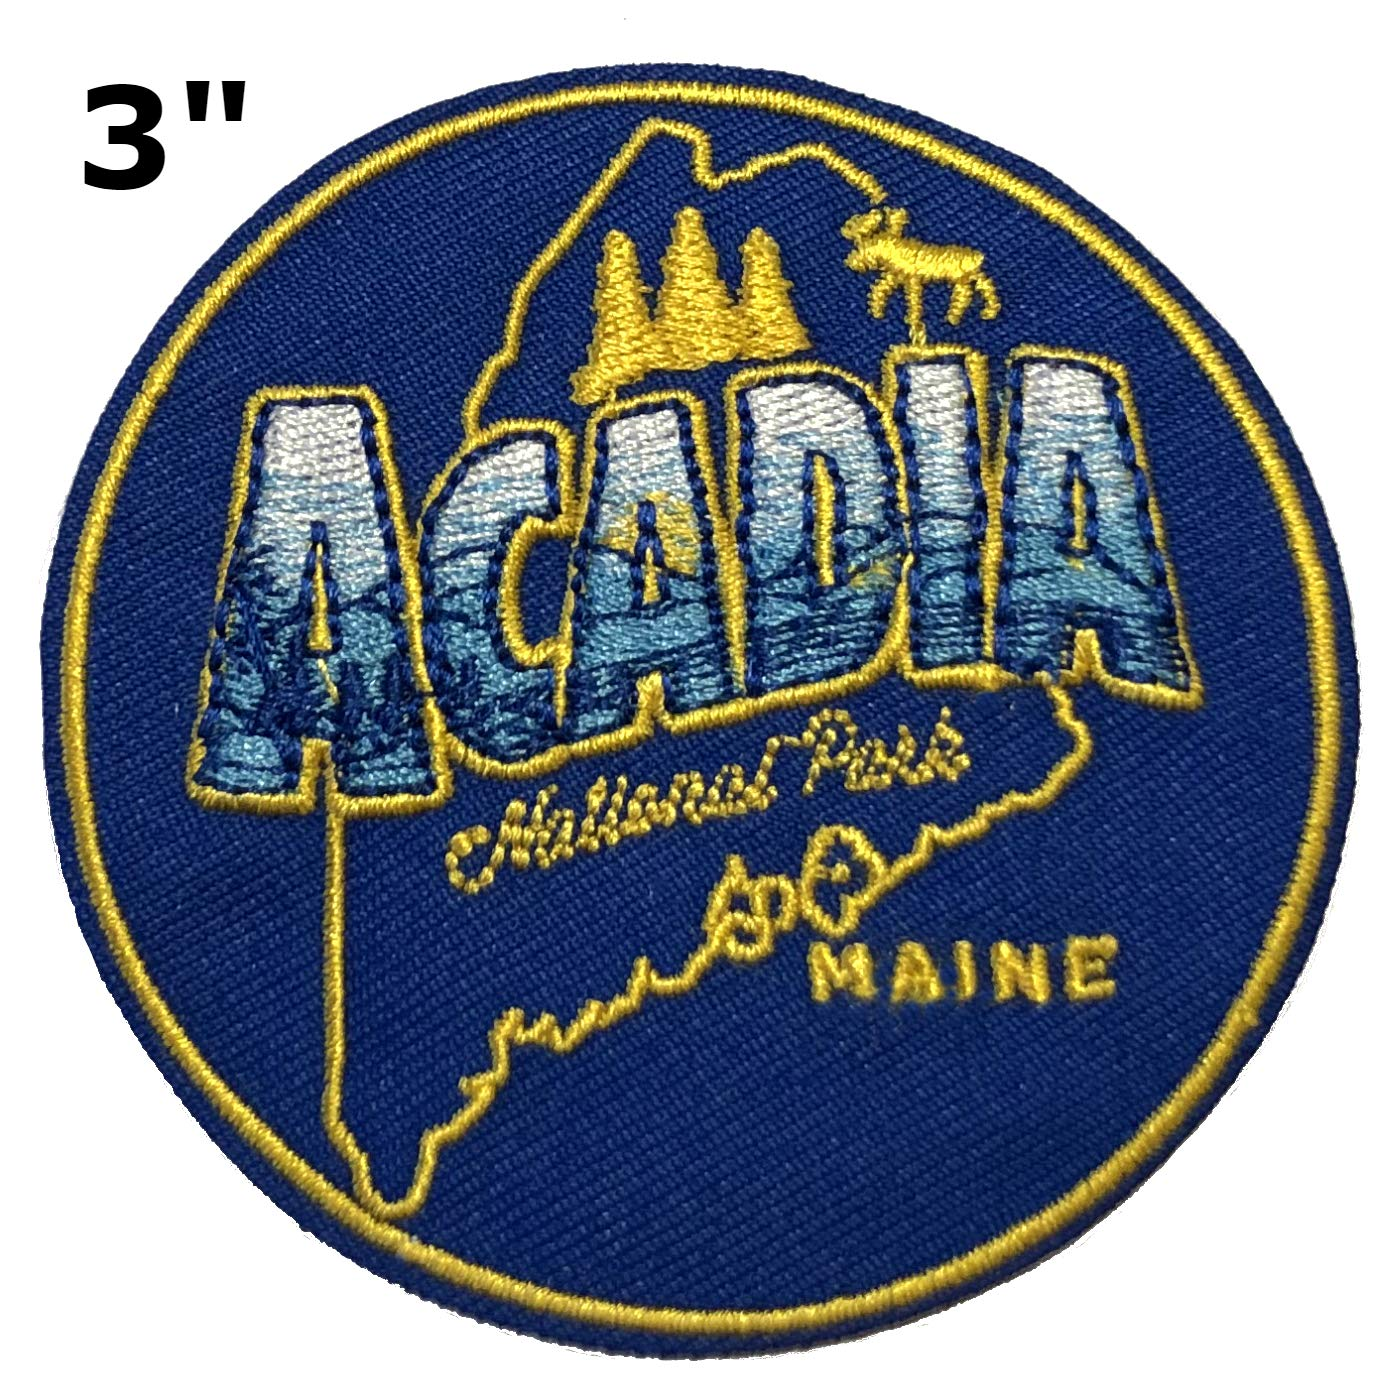 3 Embroidered Patch Iron-on or Sew-on Nature Outdoor Adventure National Park Series Emblem Badge DIY Appliques Application Fabric Patches Explore Redwood